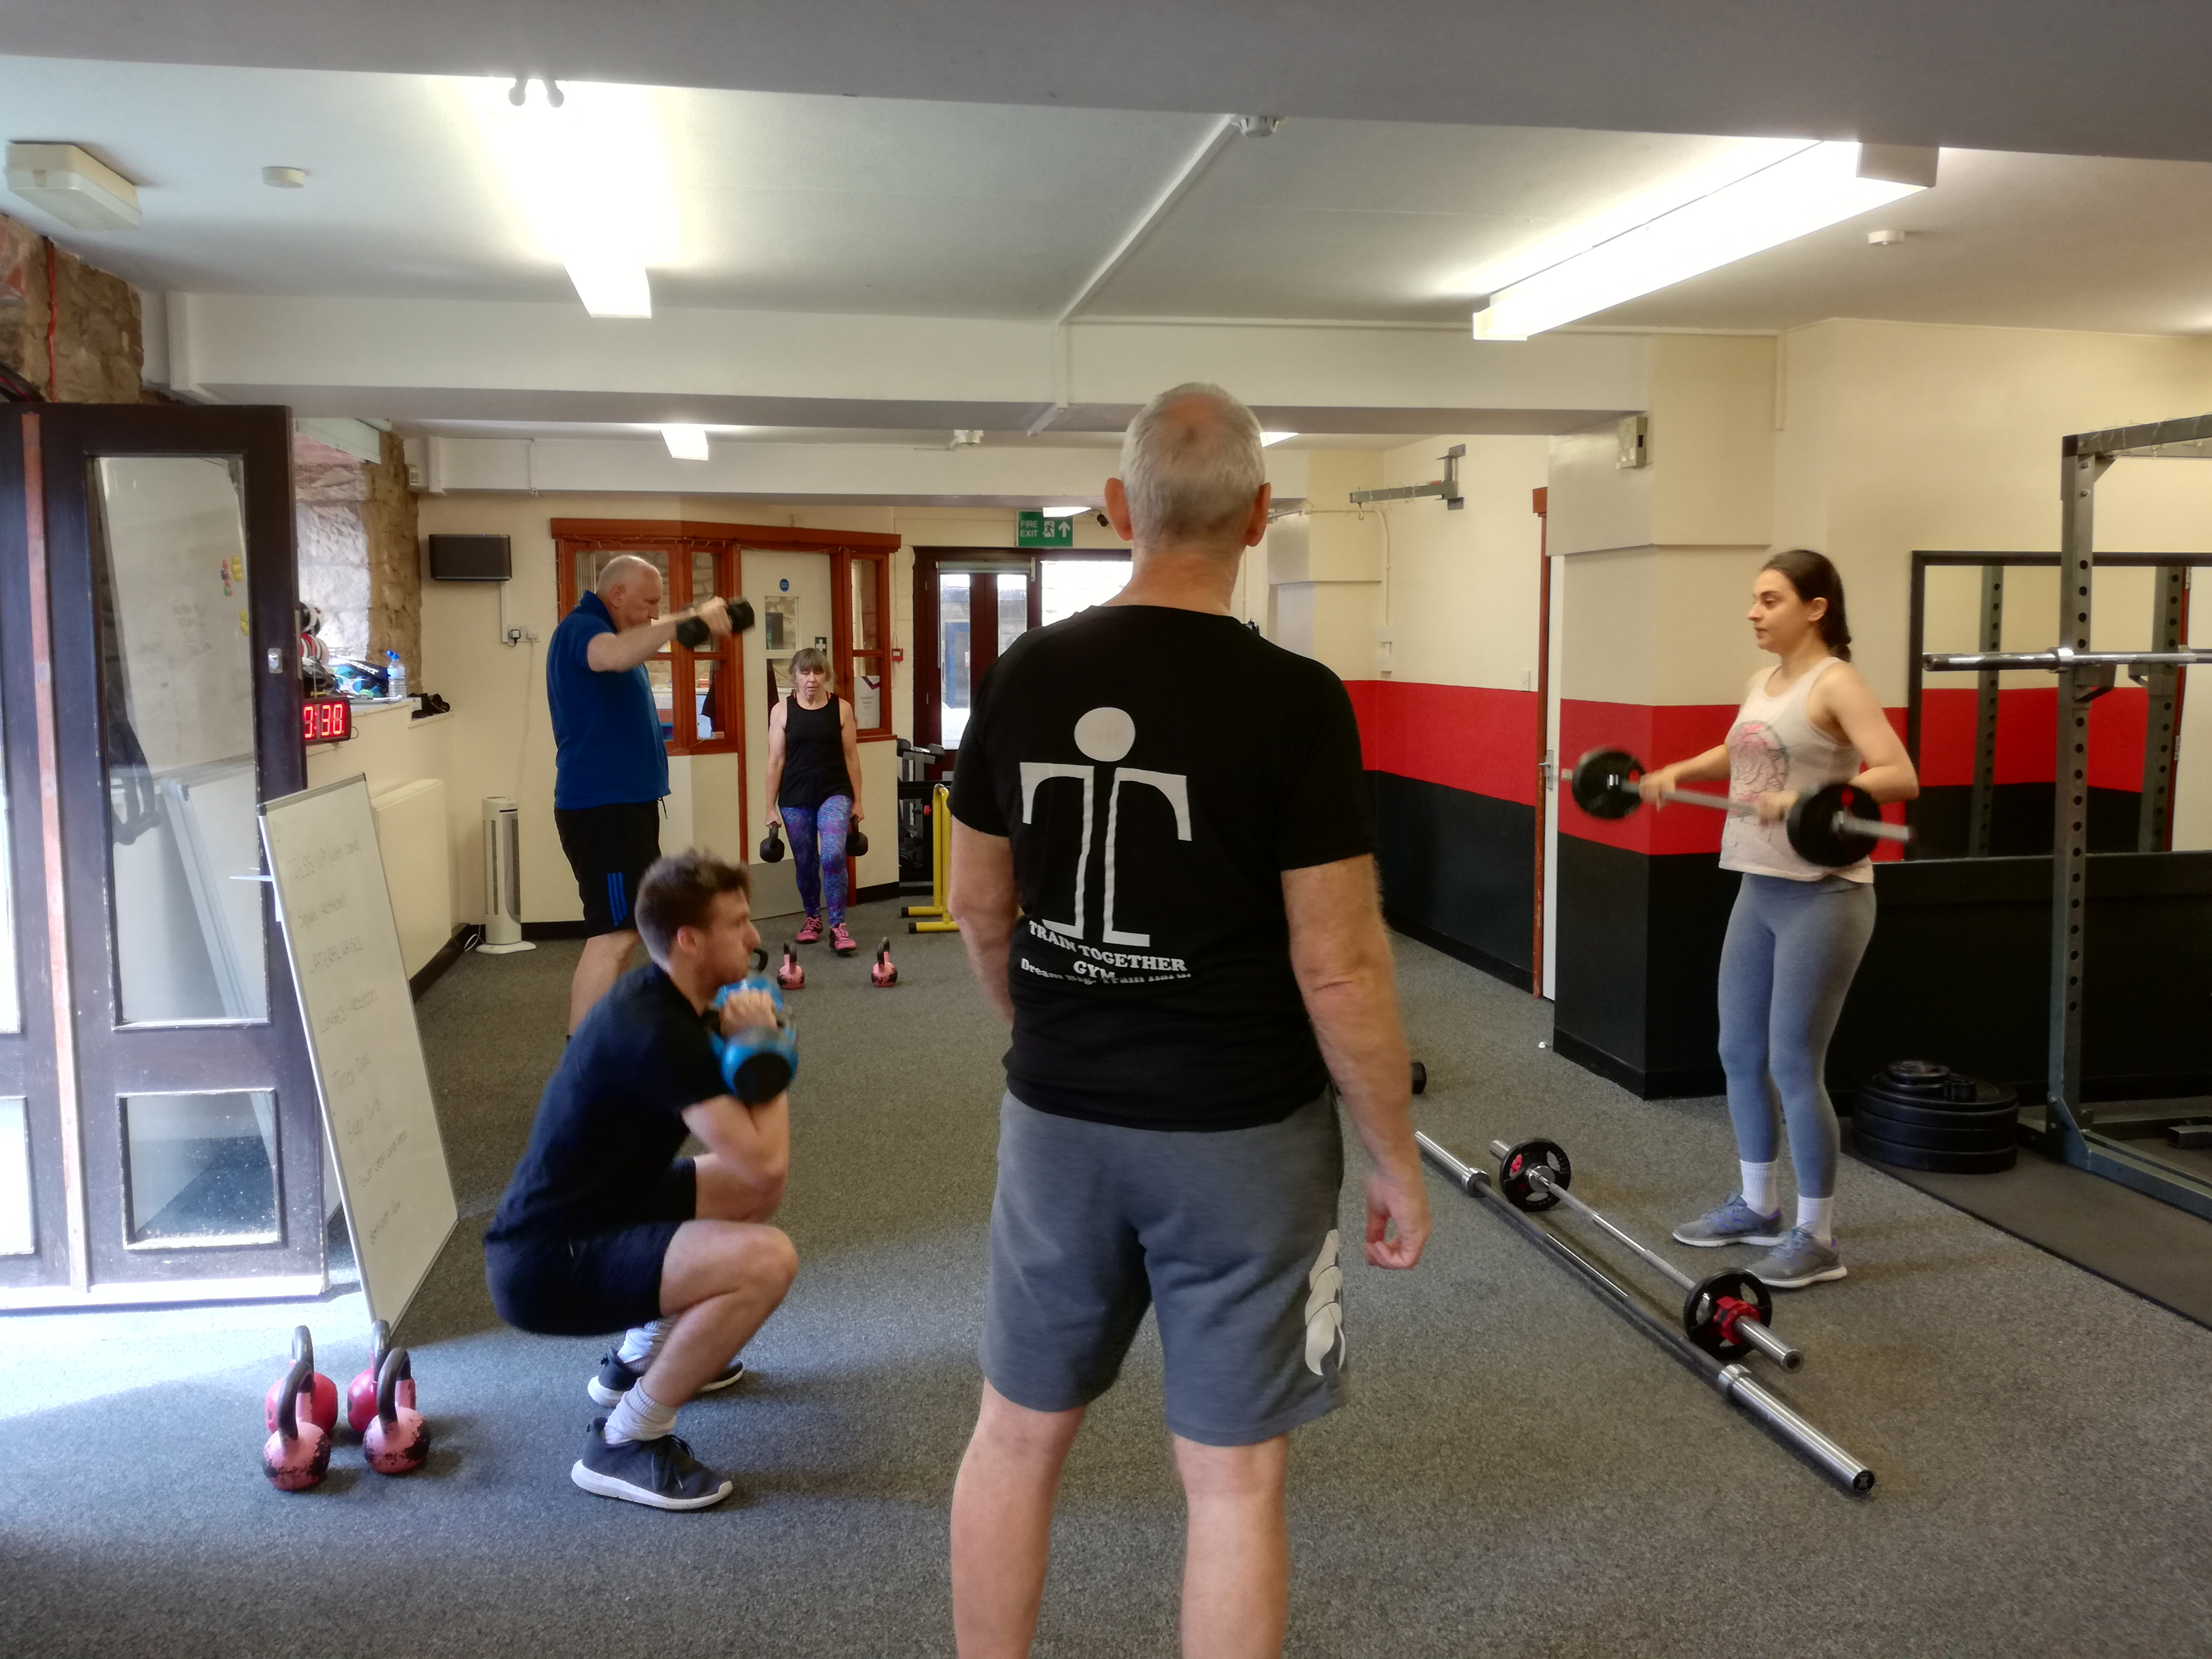 Joining a Gym: The Myths and the Benefits